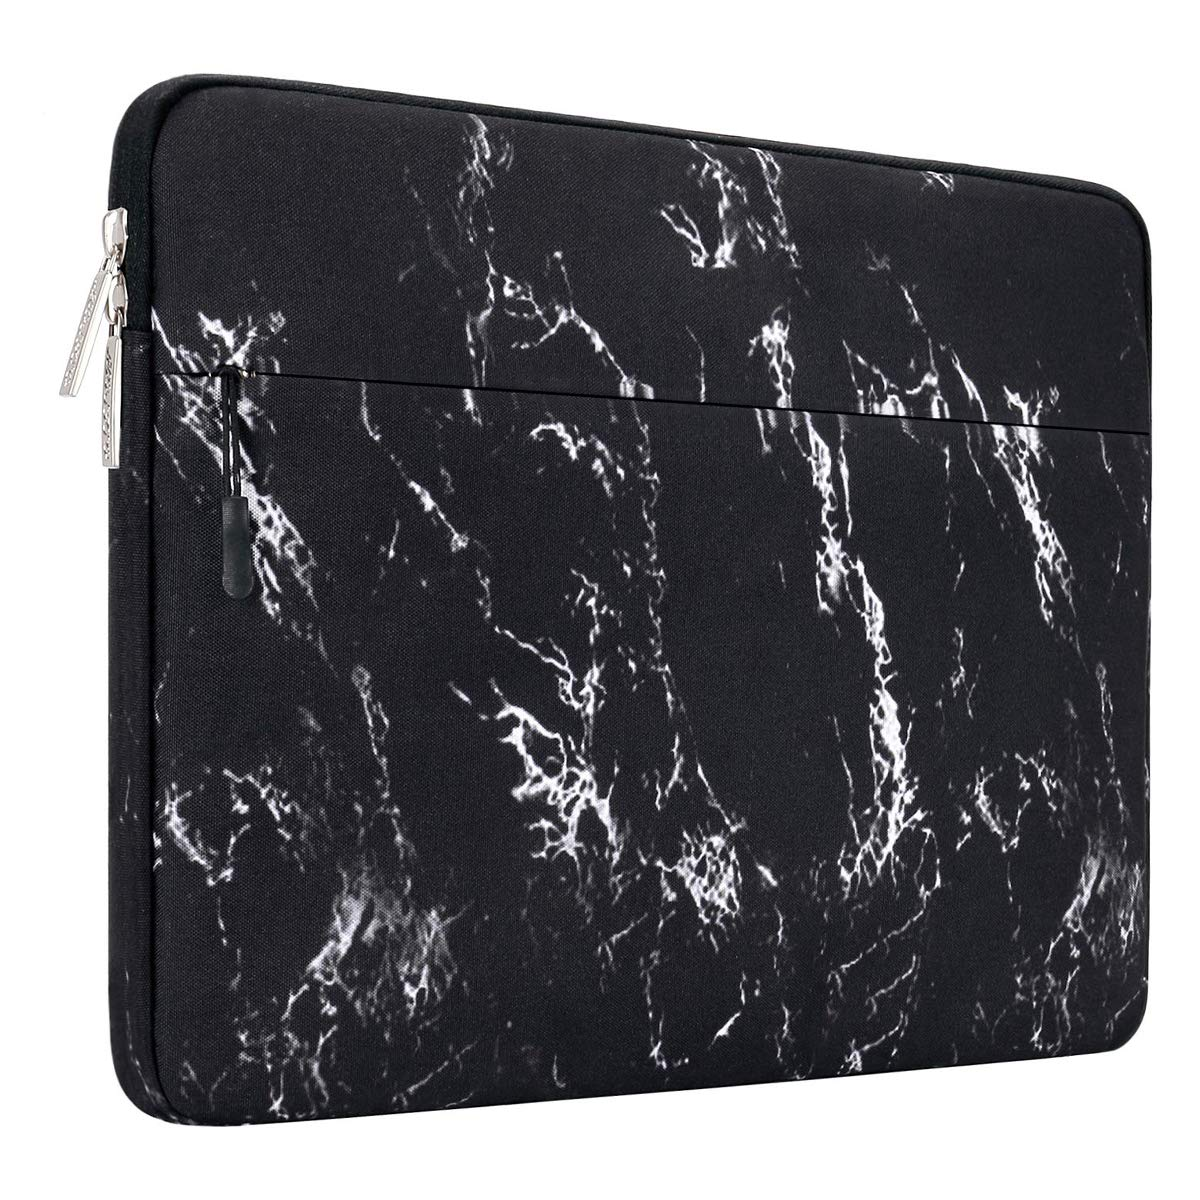 MOSISO Laptop Sleeve Bag Compatible 13-13.3 Inch MacBook Pro, MacBook Air, Notebook Computer with Accessory Pocket, Ultraportable Protective Canvas Marble Pattern Carrying Case Cover, Black